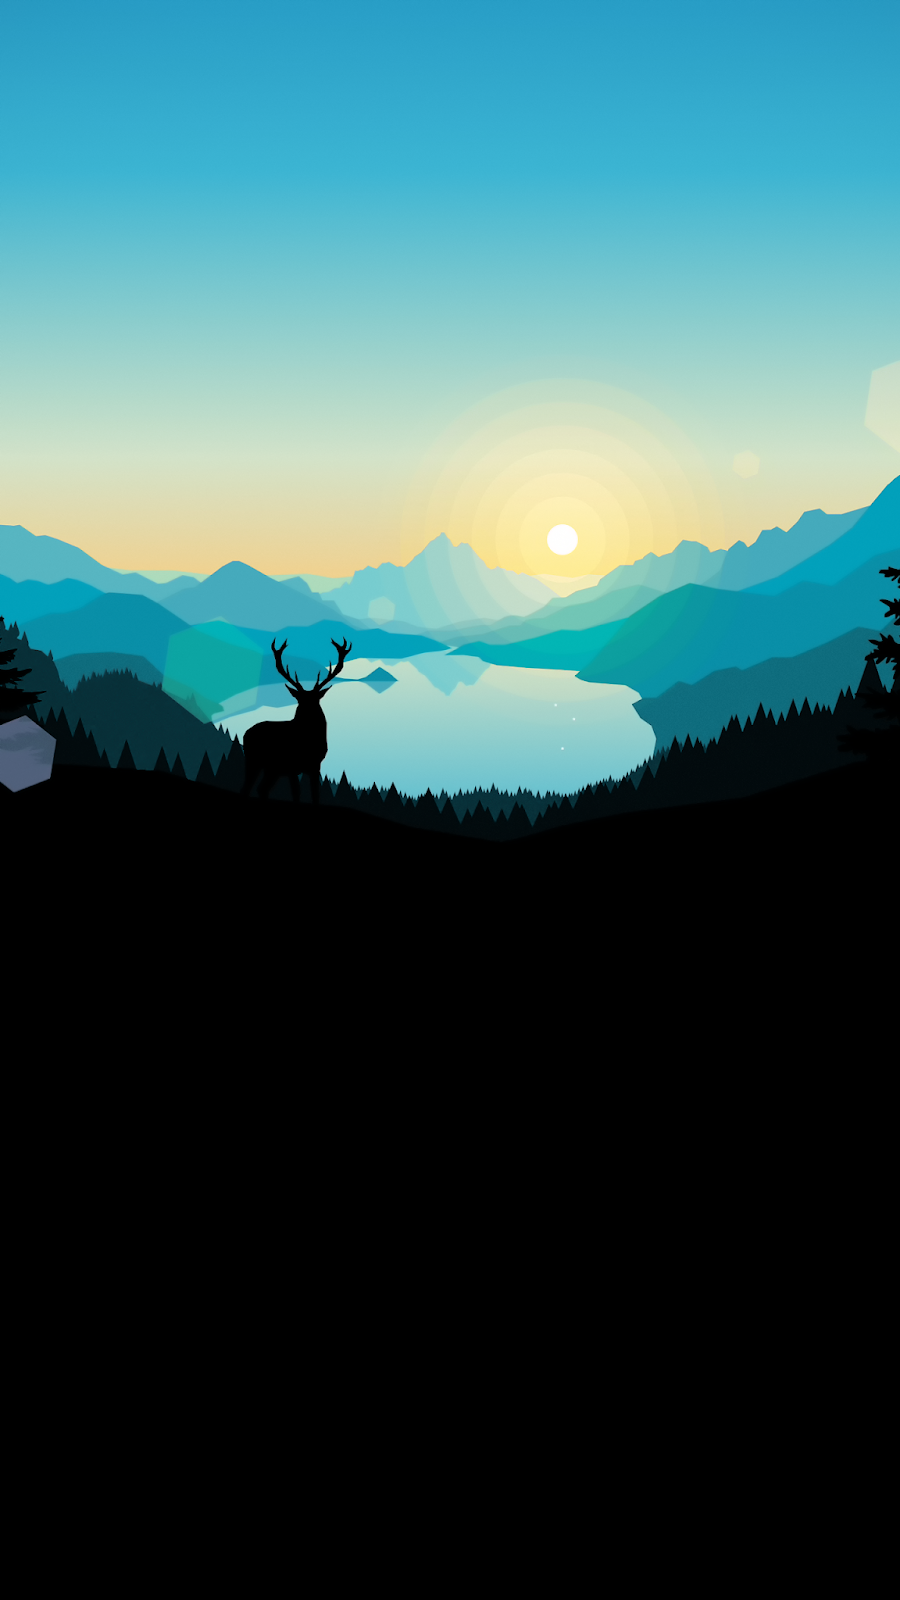 Firewatch Sunrise Lakeside Wallpaper Iphone Android Landscape Wallpaper Iphone Wallpaper Architecture Art Wallpaper